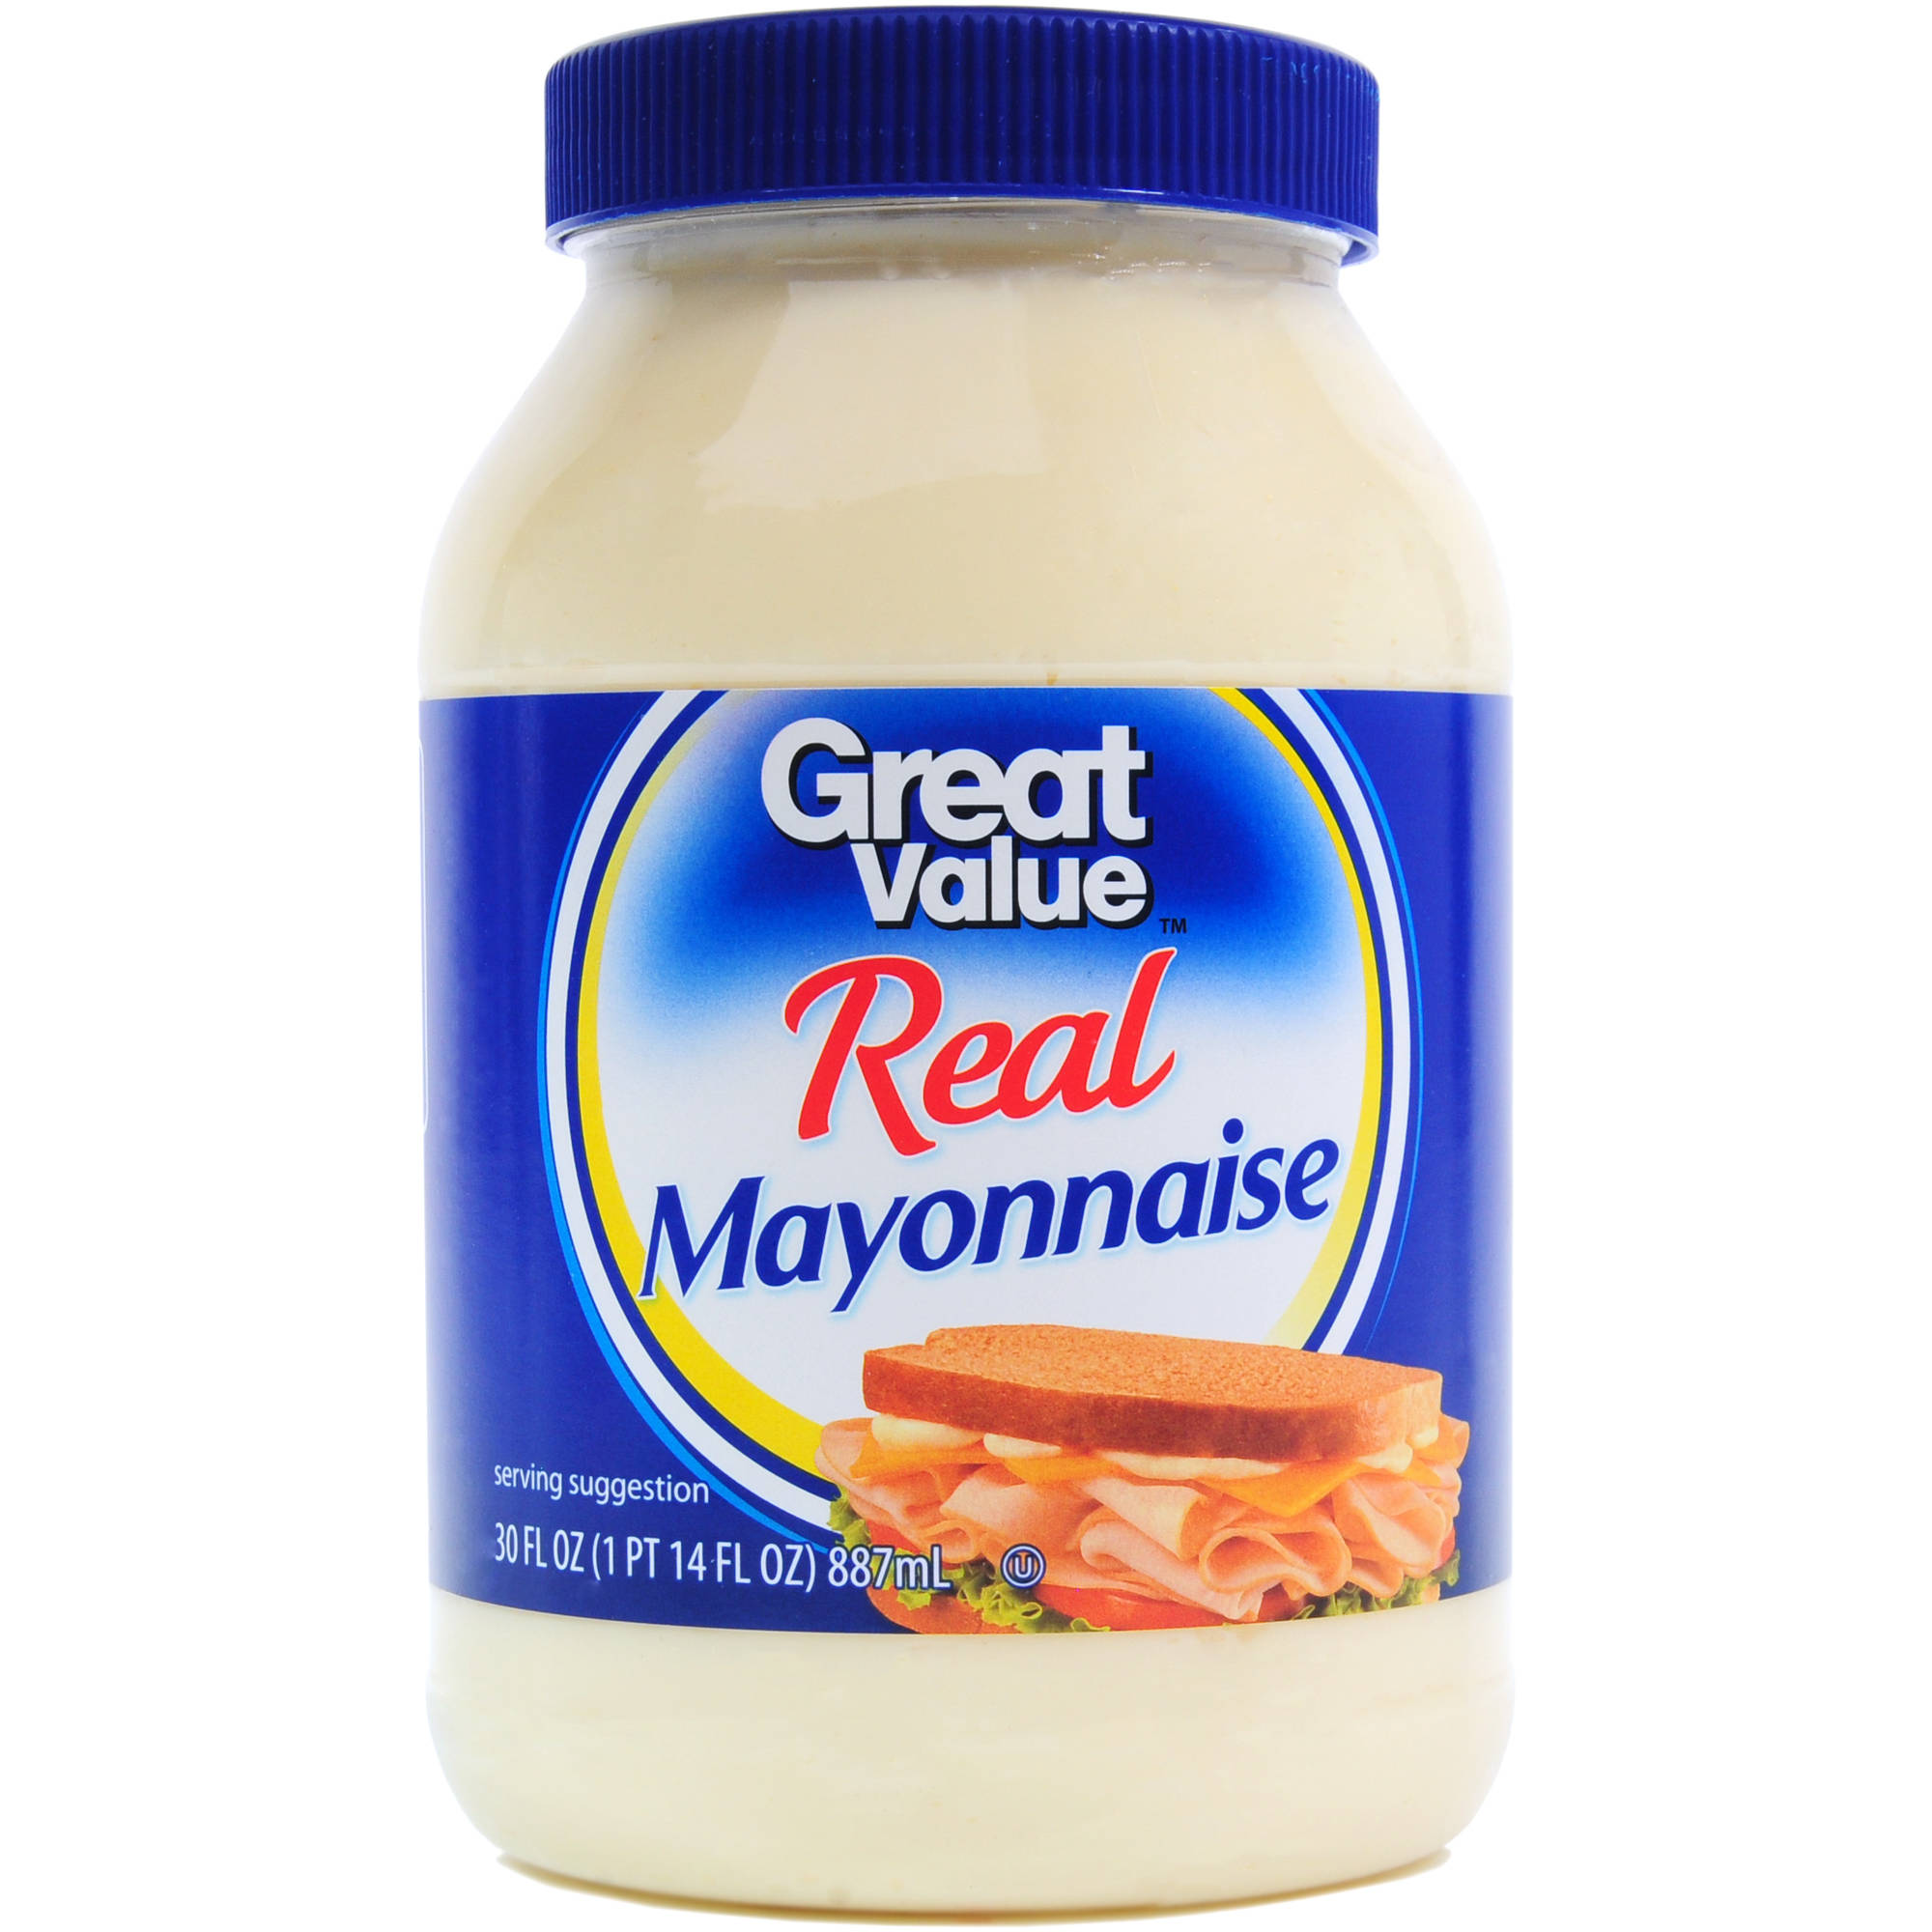 Great Value Real Mayonnaise, 30 fl oz